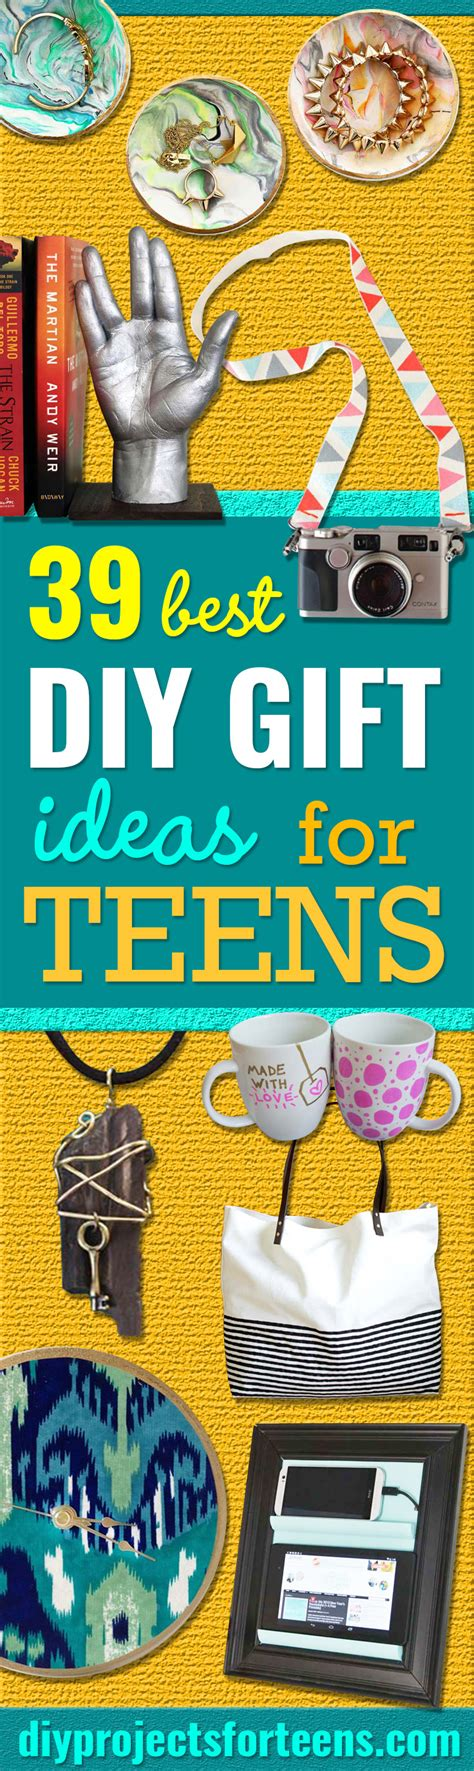 coolest christmas for boys teen 39 best diy gift ideas for